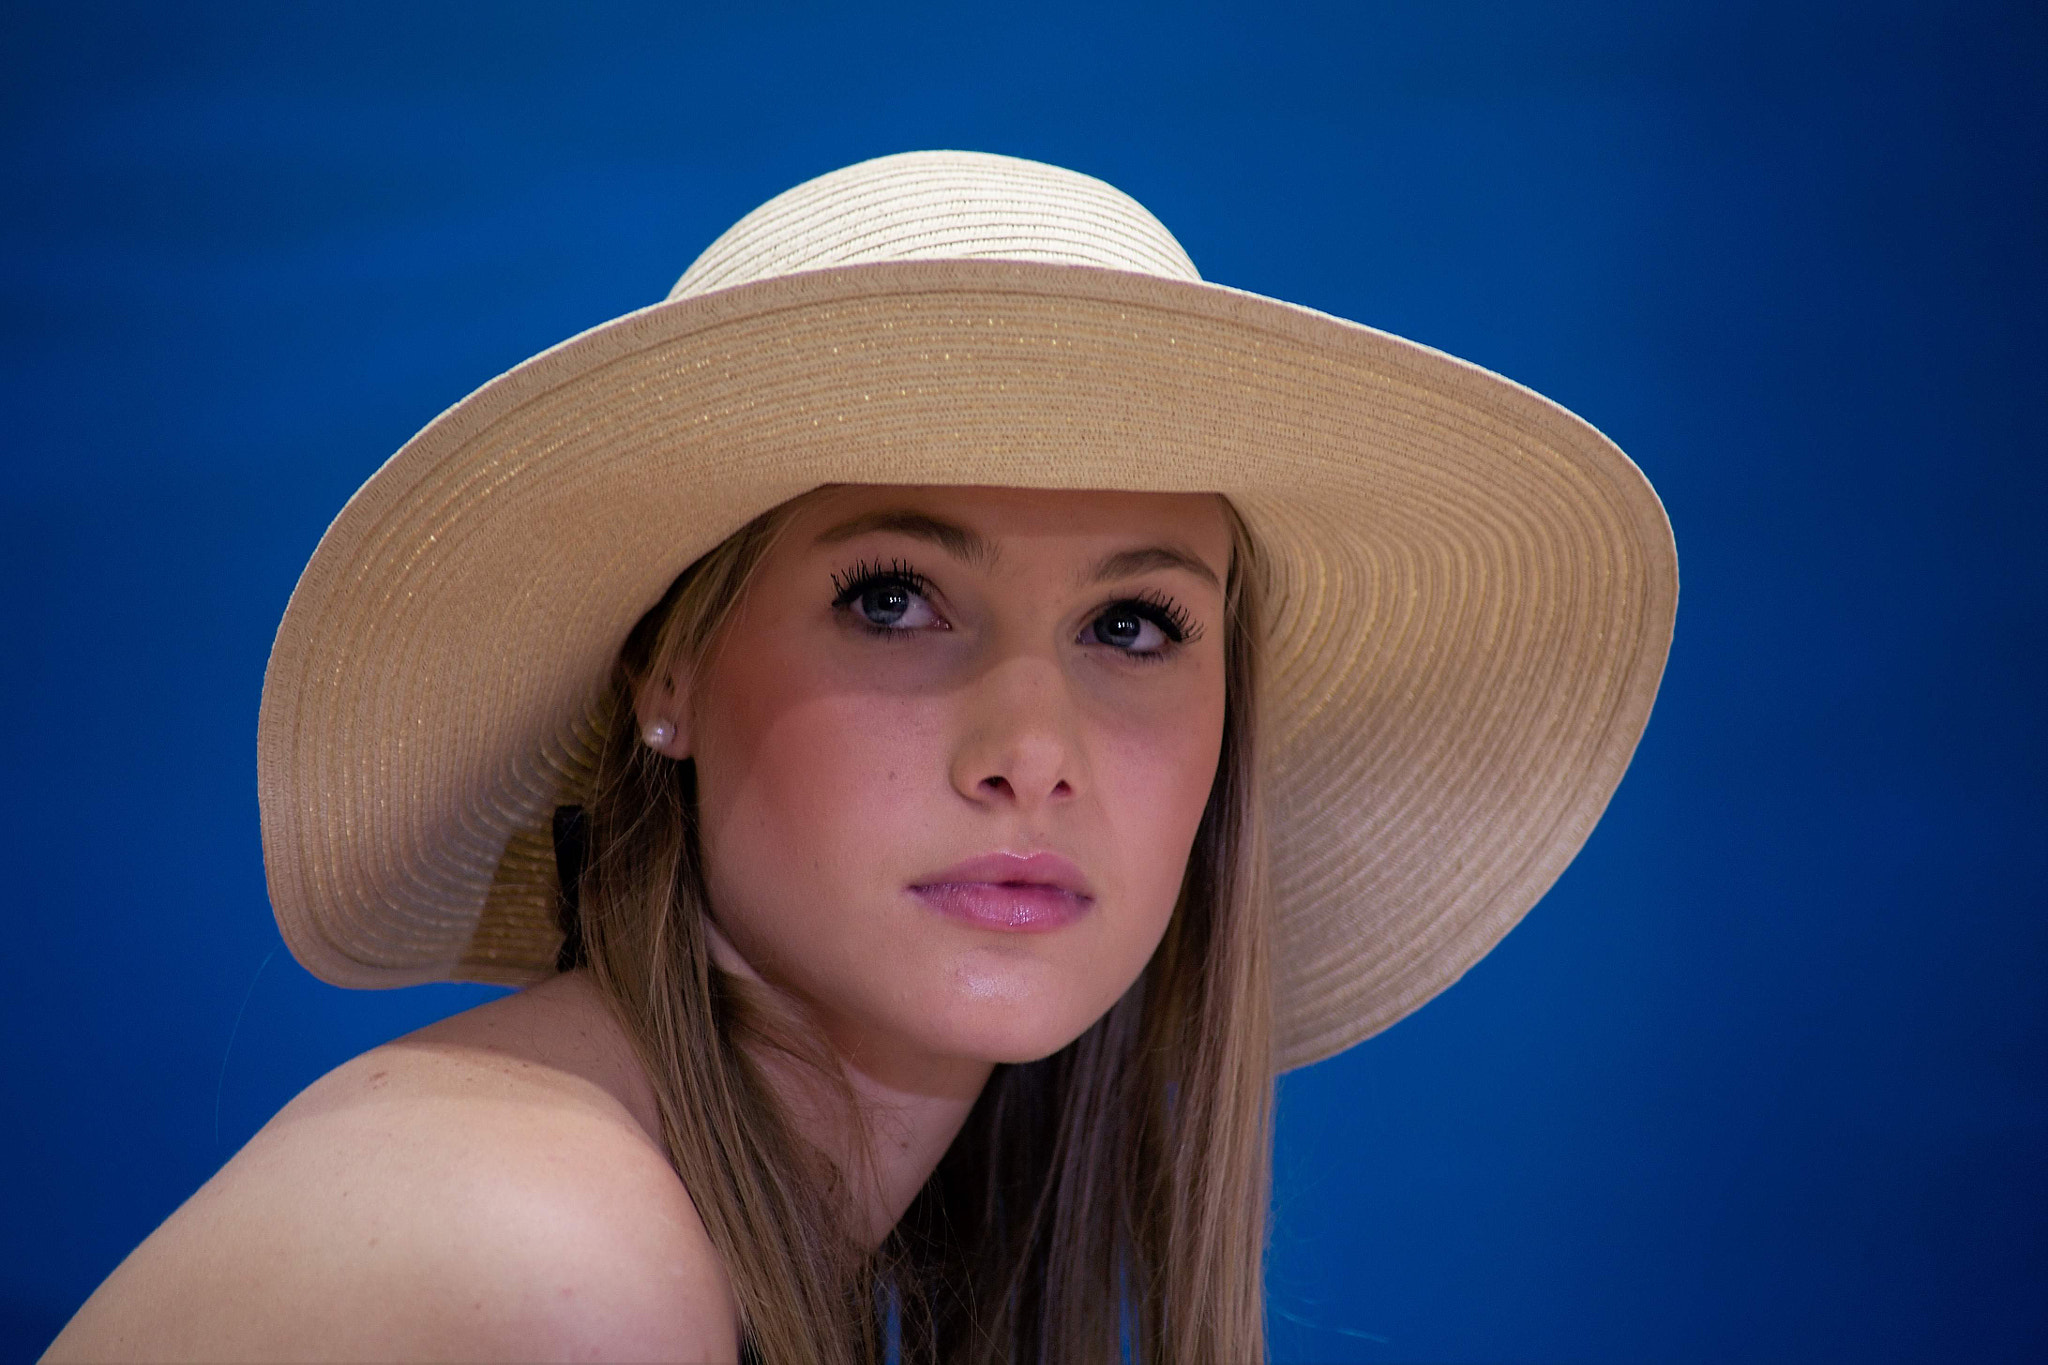 Photograph La ragazza col cappello - The girl with the hat by Paolo Trofa on 500px